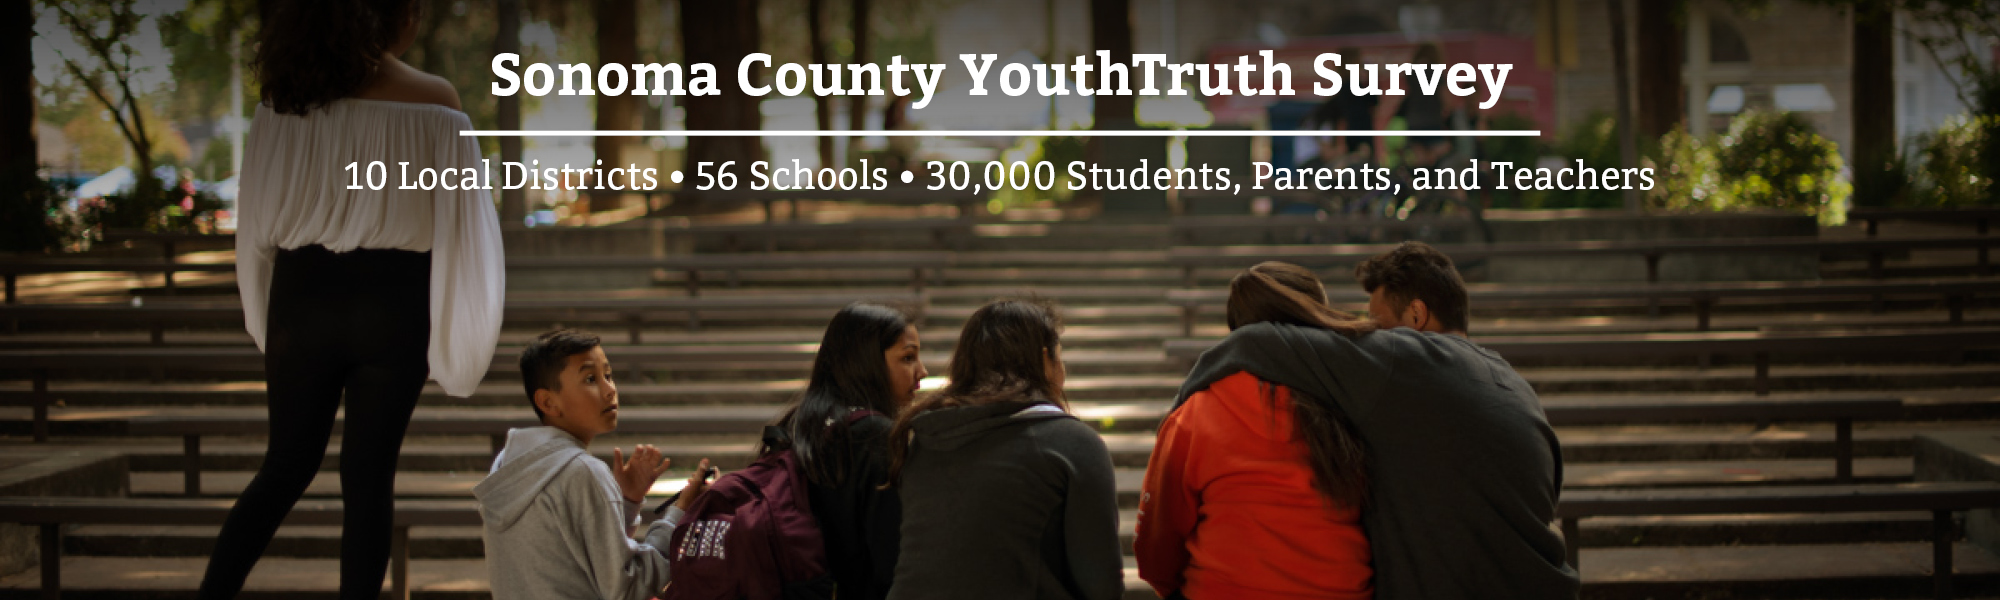 The Sonoma County YouthTruth Survey